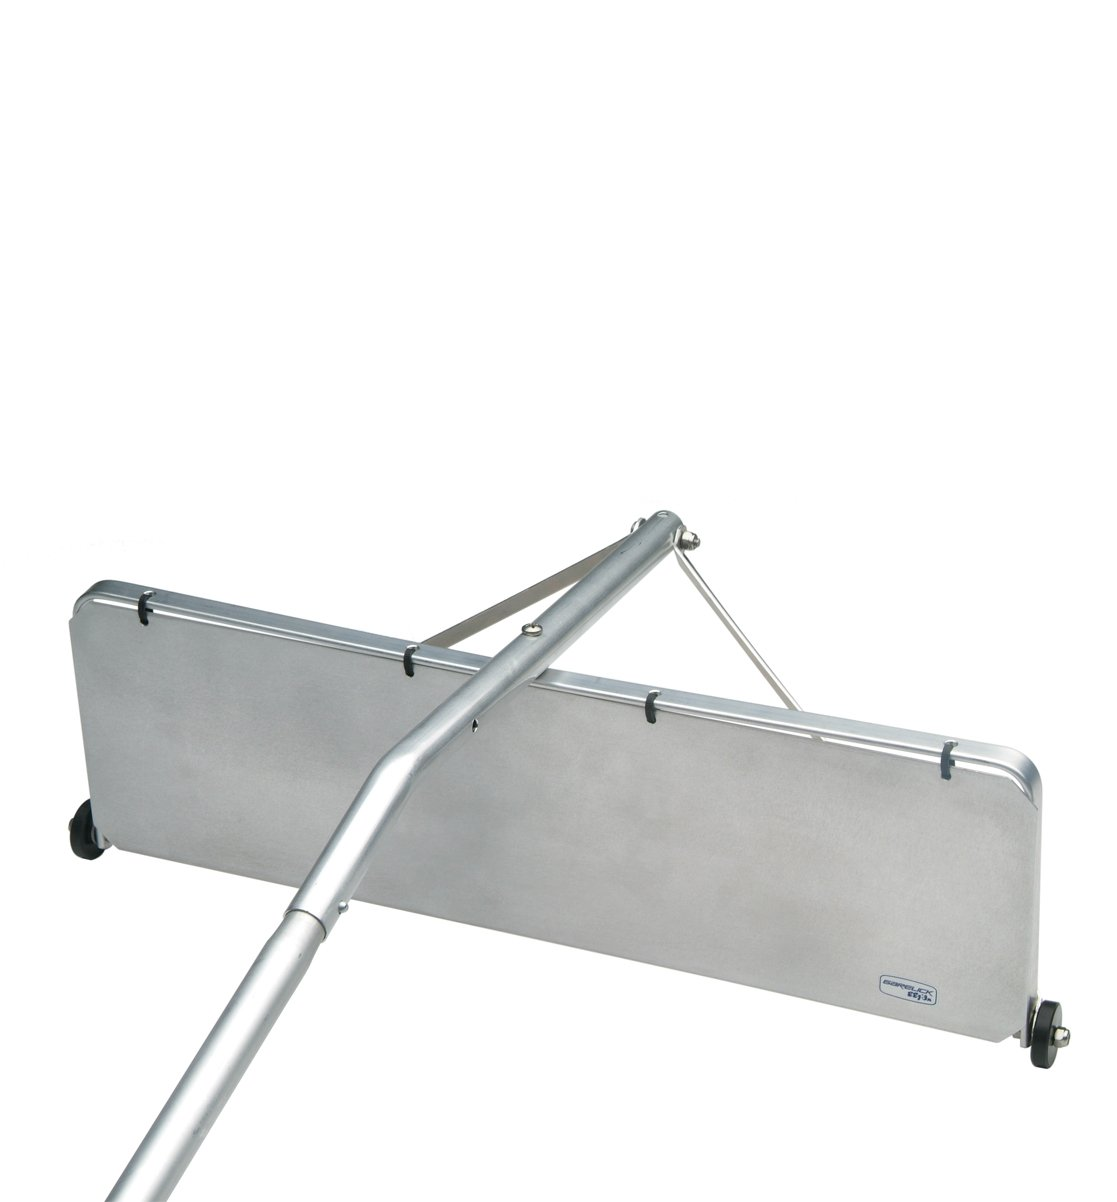 Snow Joe Garelick 89516 16-Foot Aluminum Snow Trap Roof Rake with 7-Inch by 24-Inch Blade